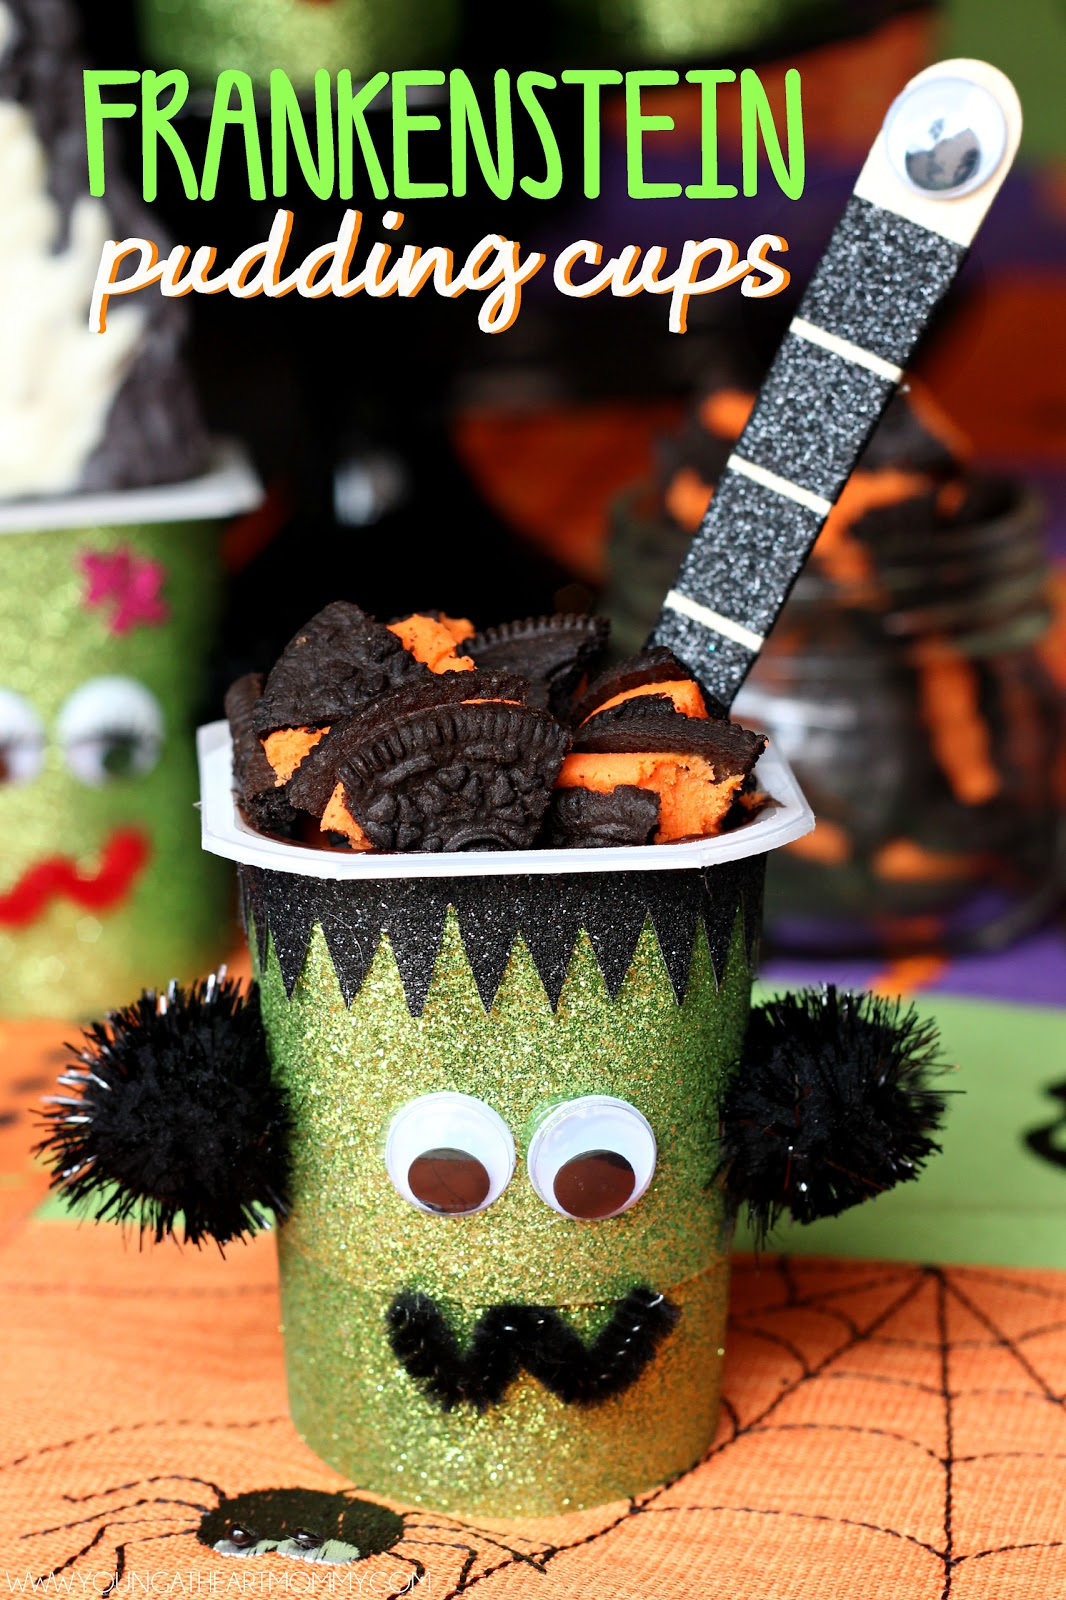 Frankestein Pudding Cups